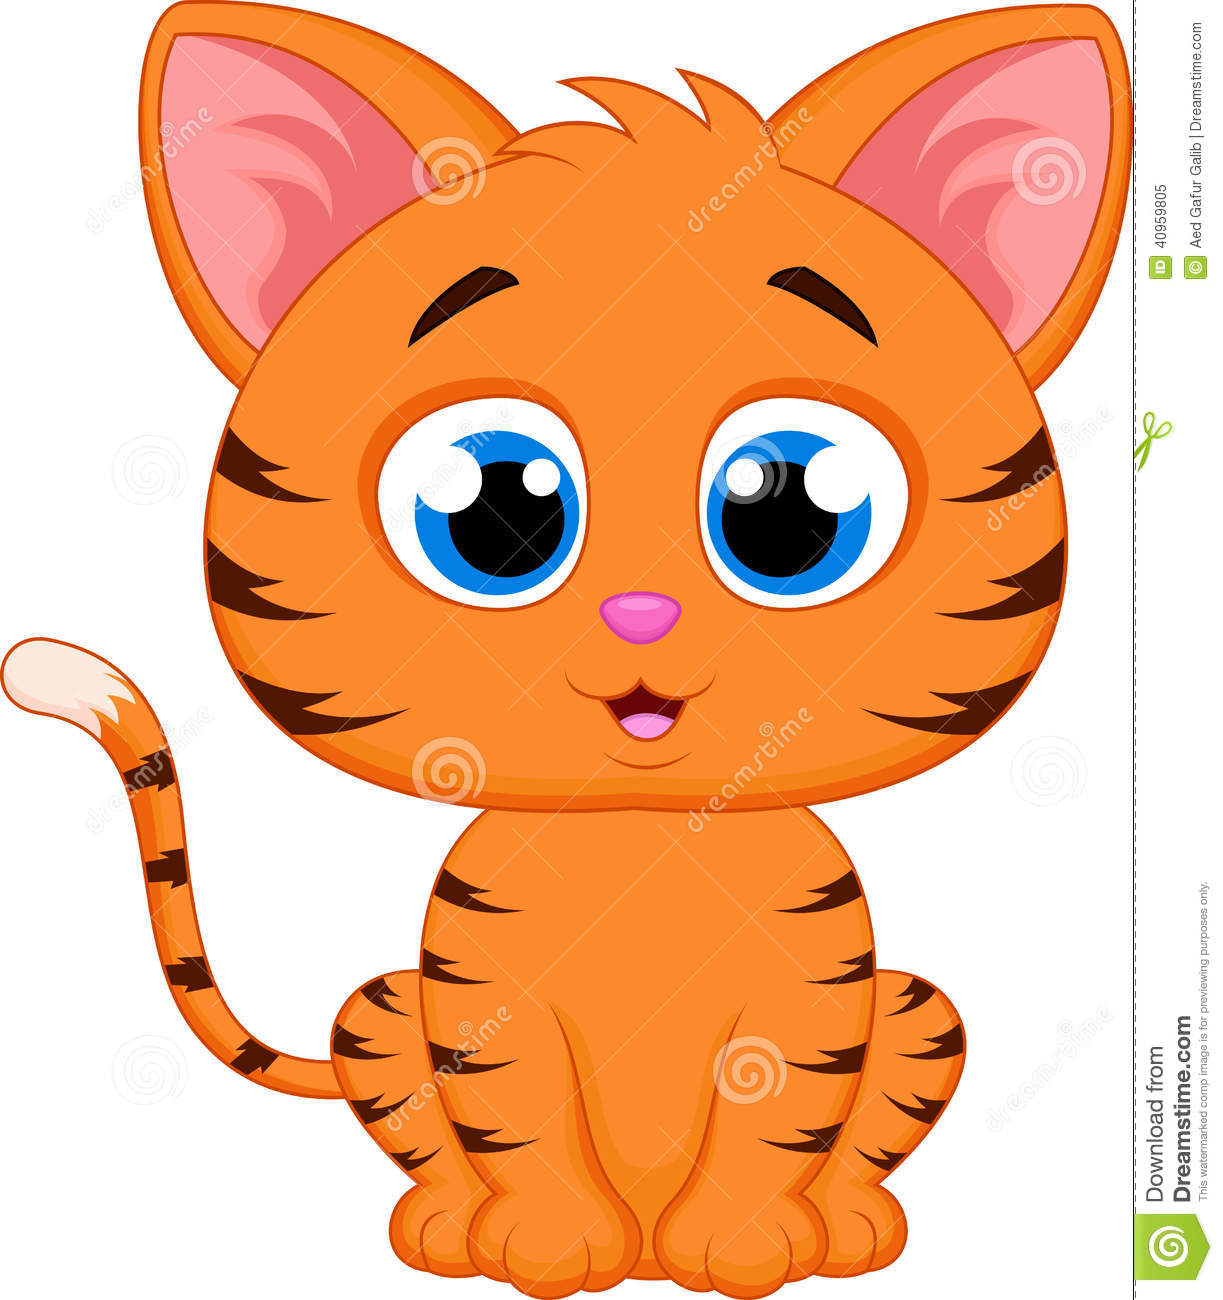 Cute Cat Cartoon Stock Vector Image